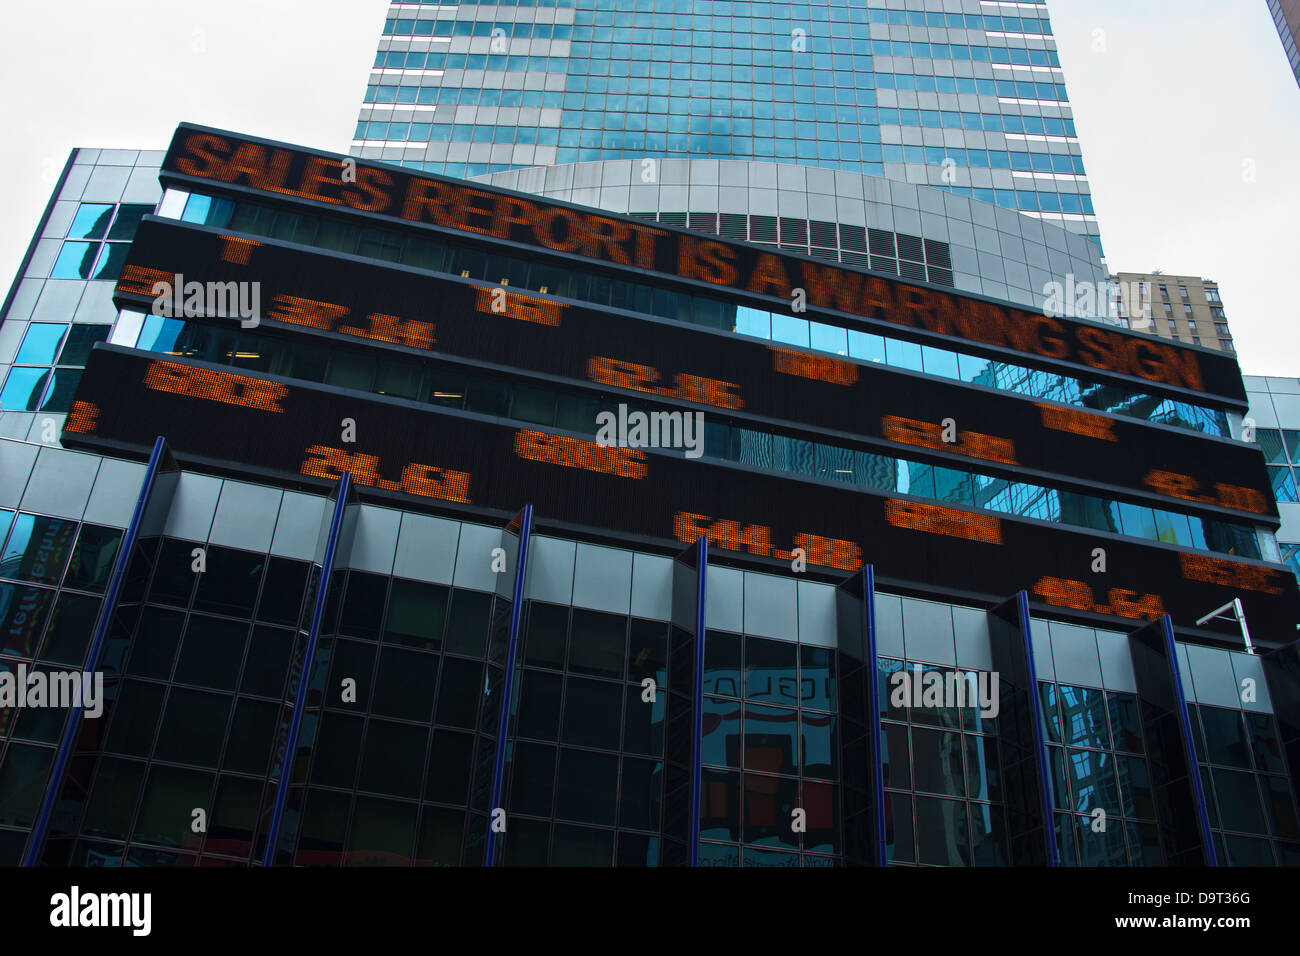 ELECTRONIC STOCK MARKET PRICE TICKER DISPLAY MANHATTAN NEW YORK CITY USA - Stock Image